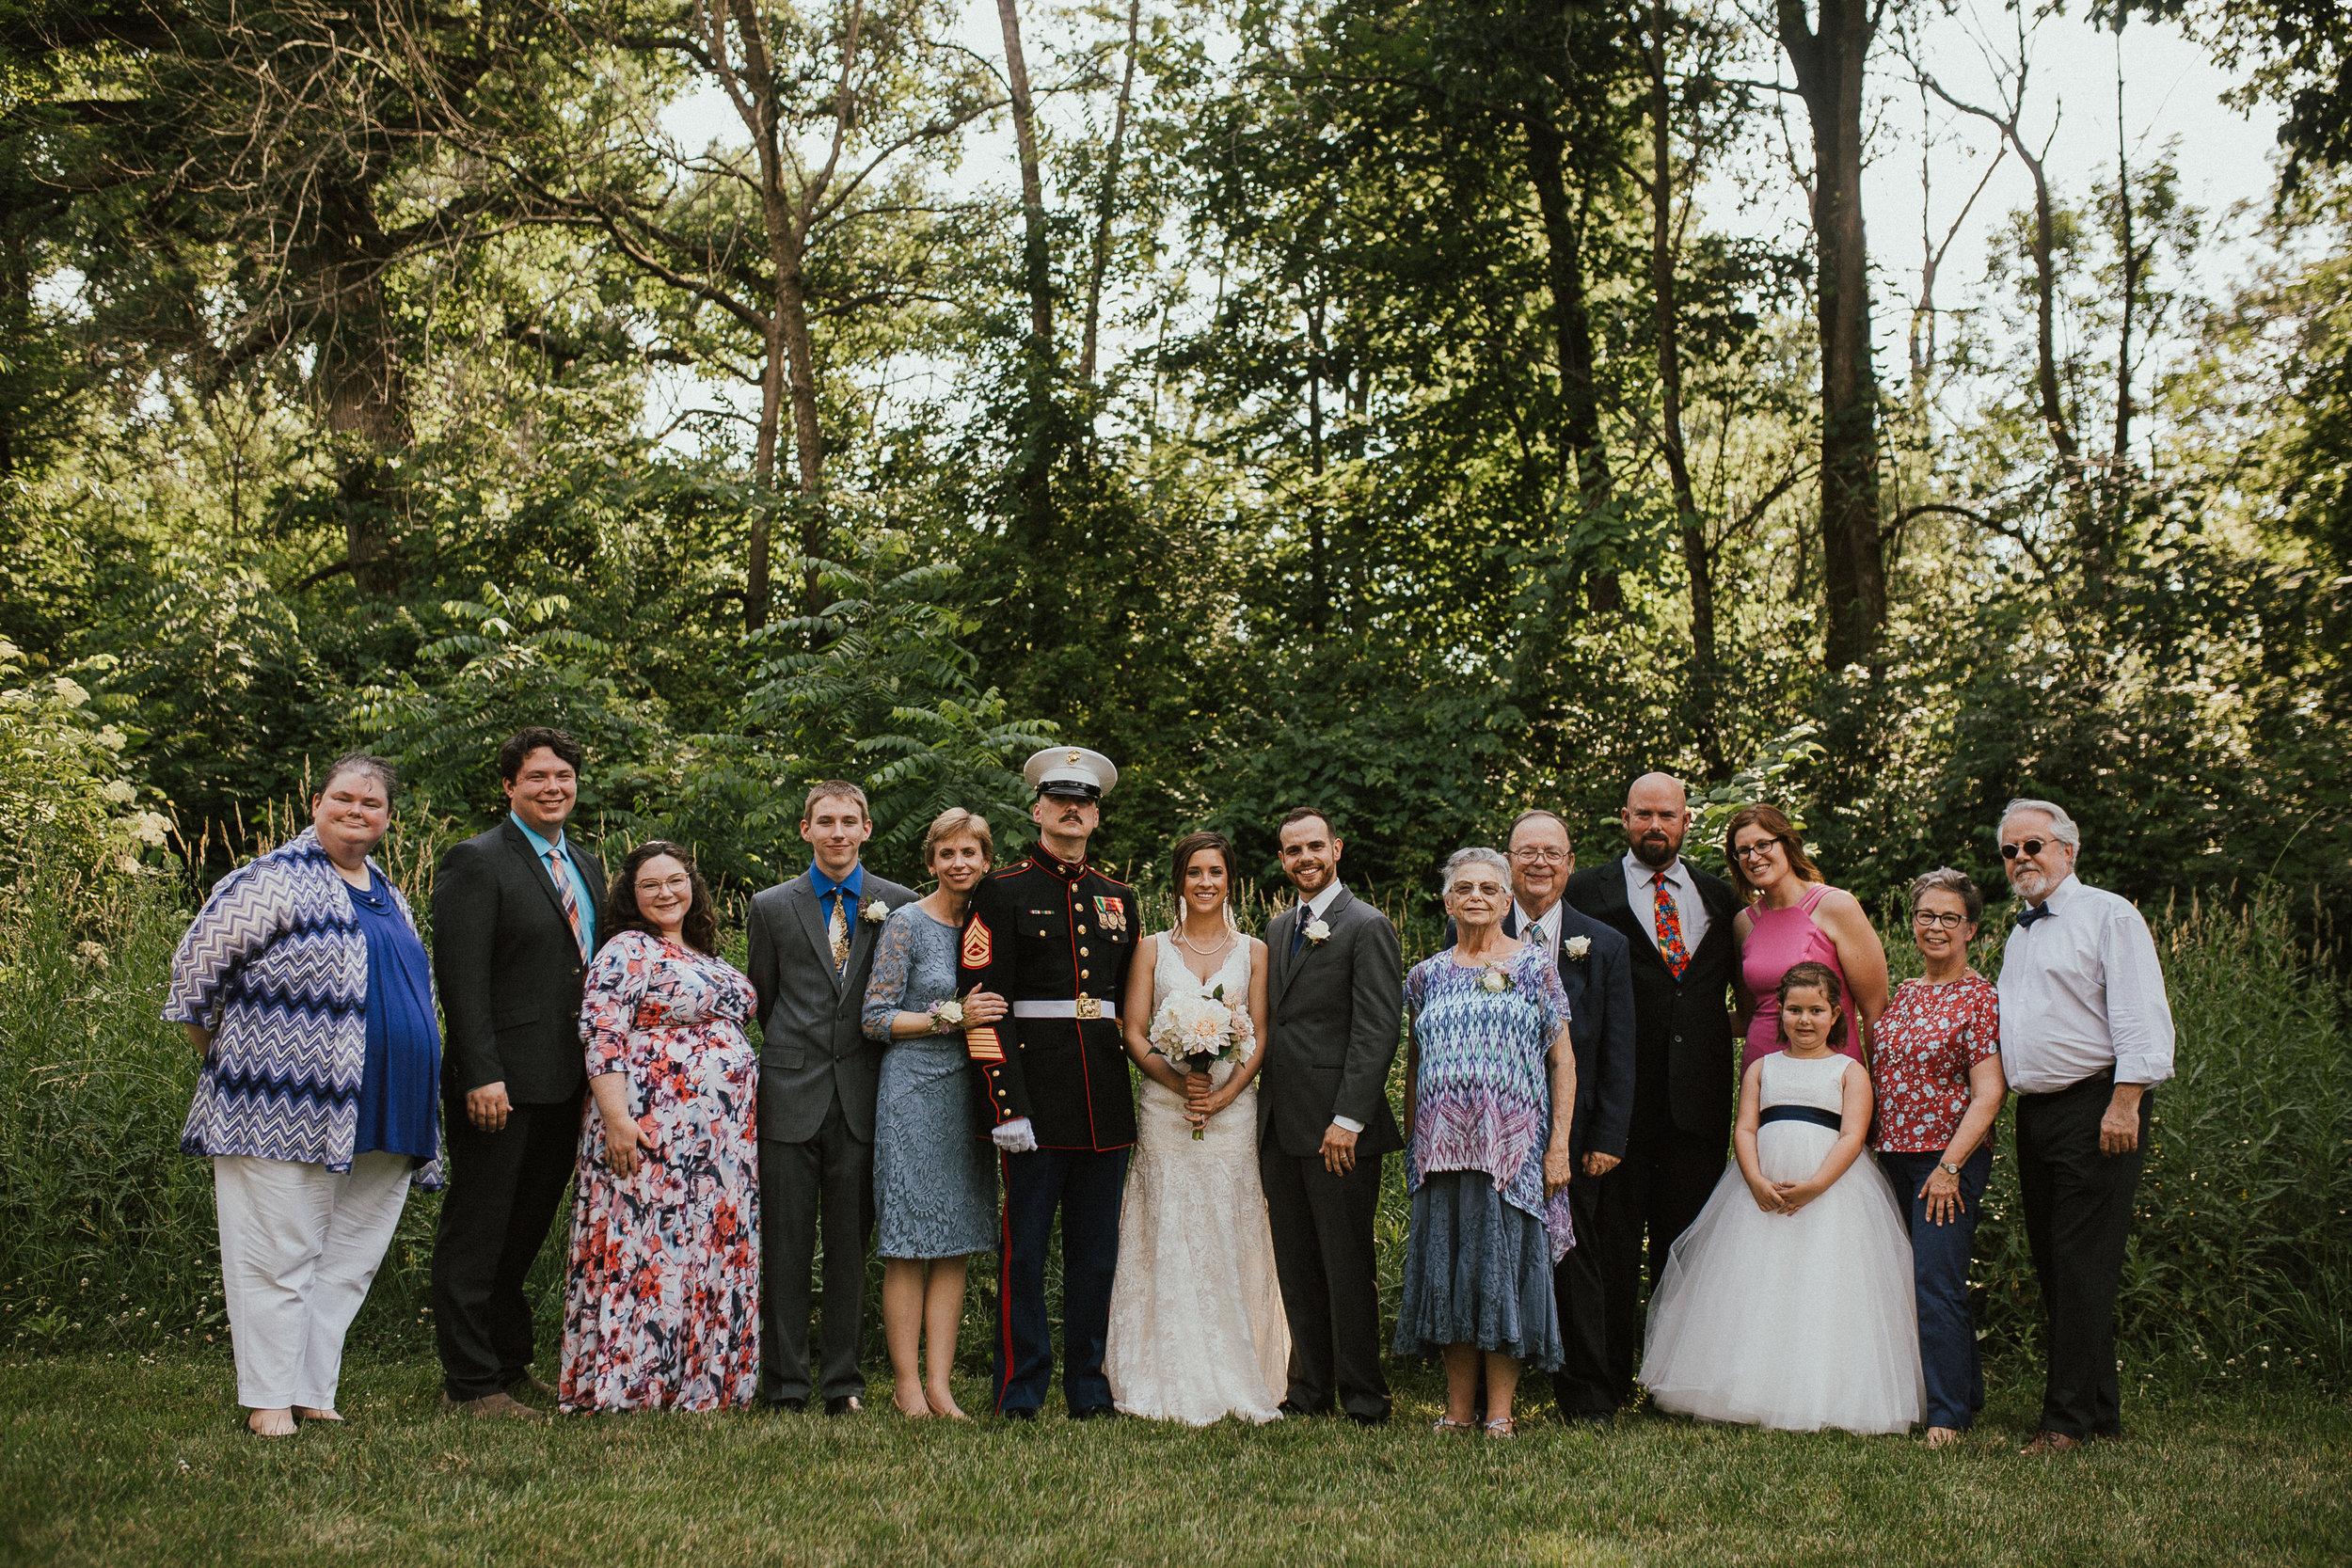 EADS-WEDDING-REAGANLYNNPHOTOGRAPHY-ANDERSON-INDIANA-24.jpg